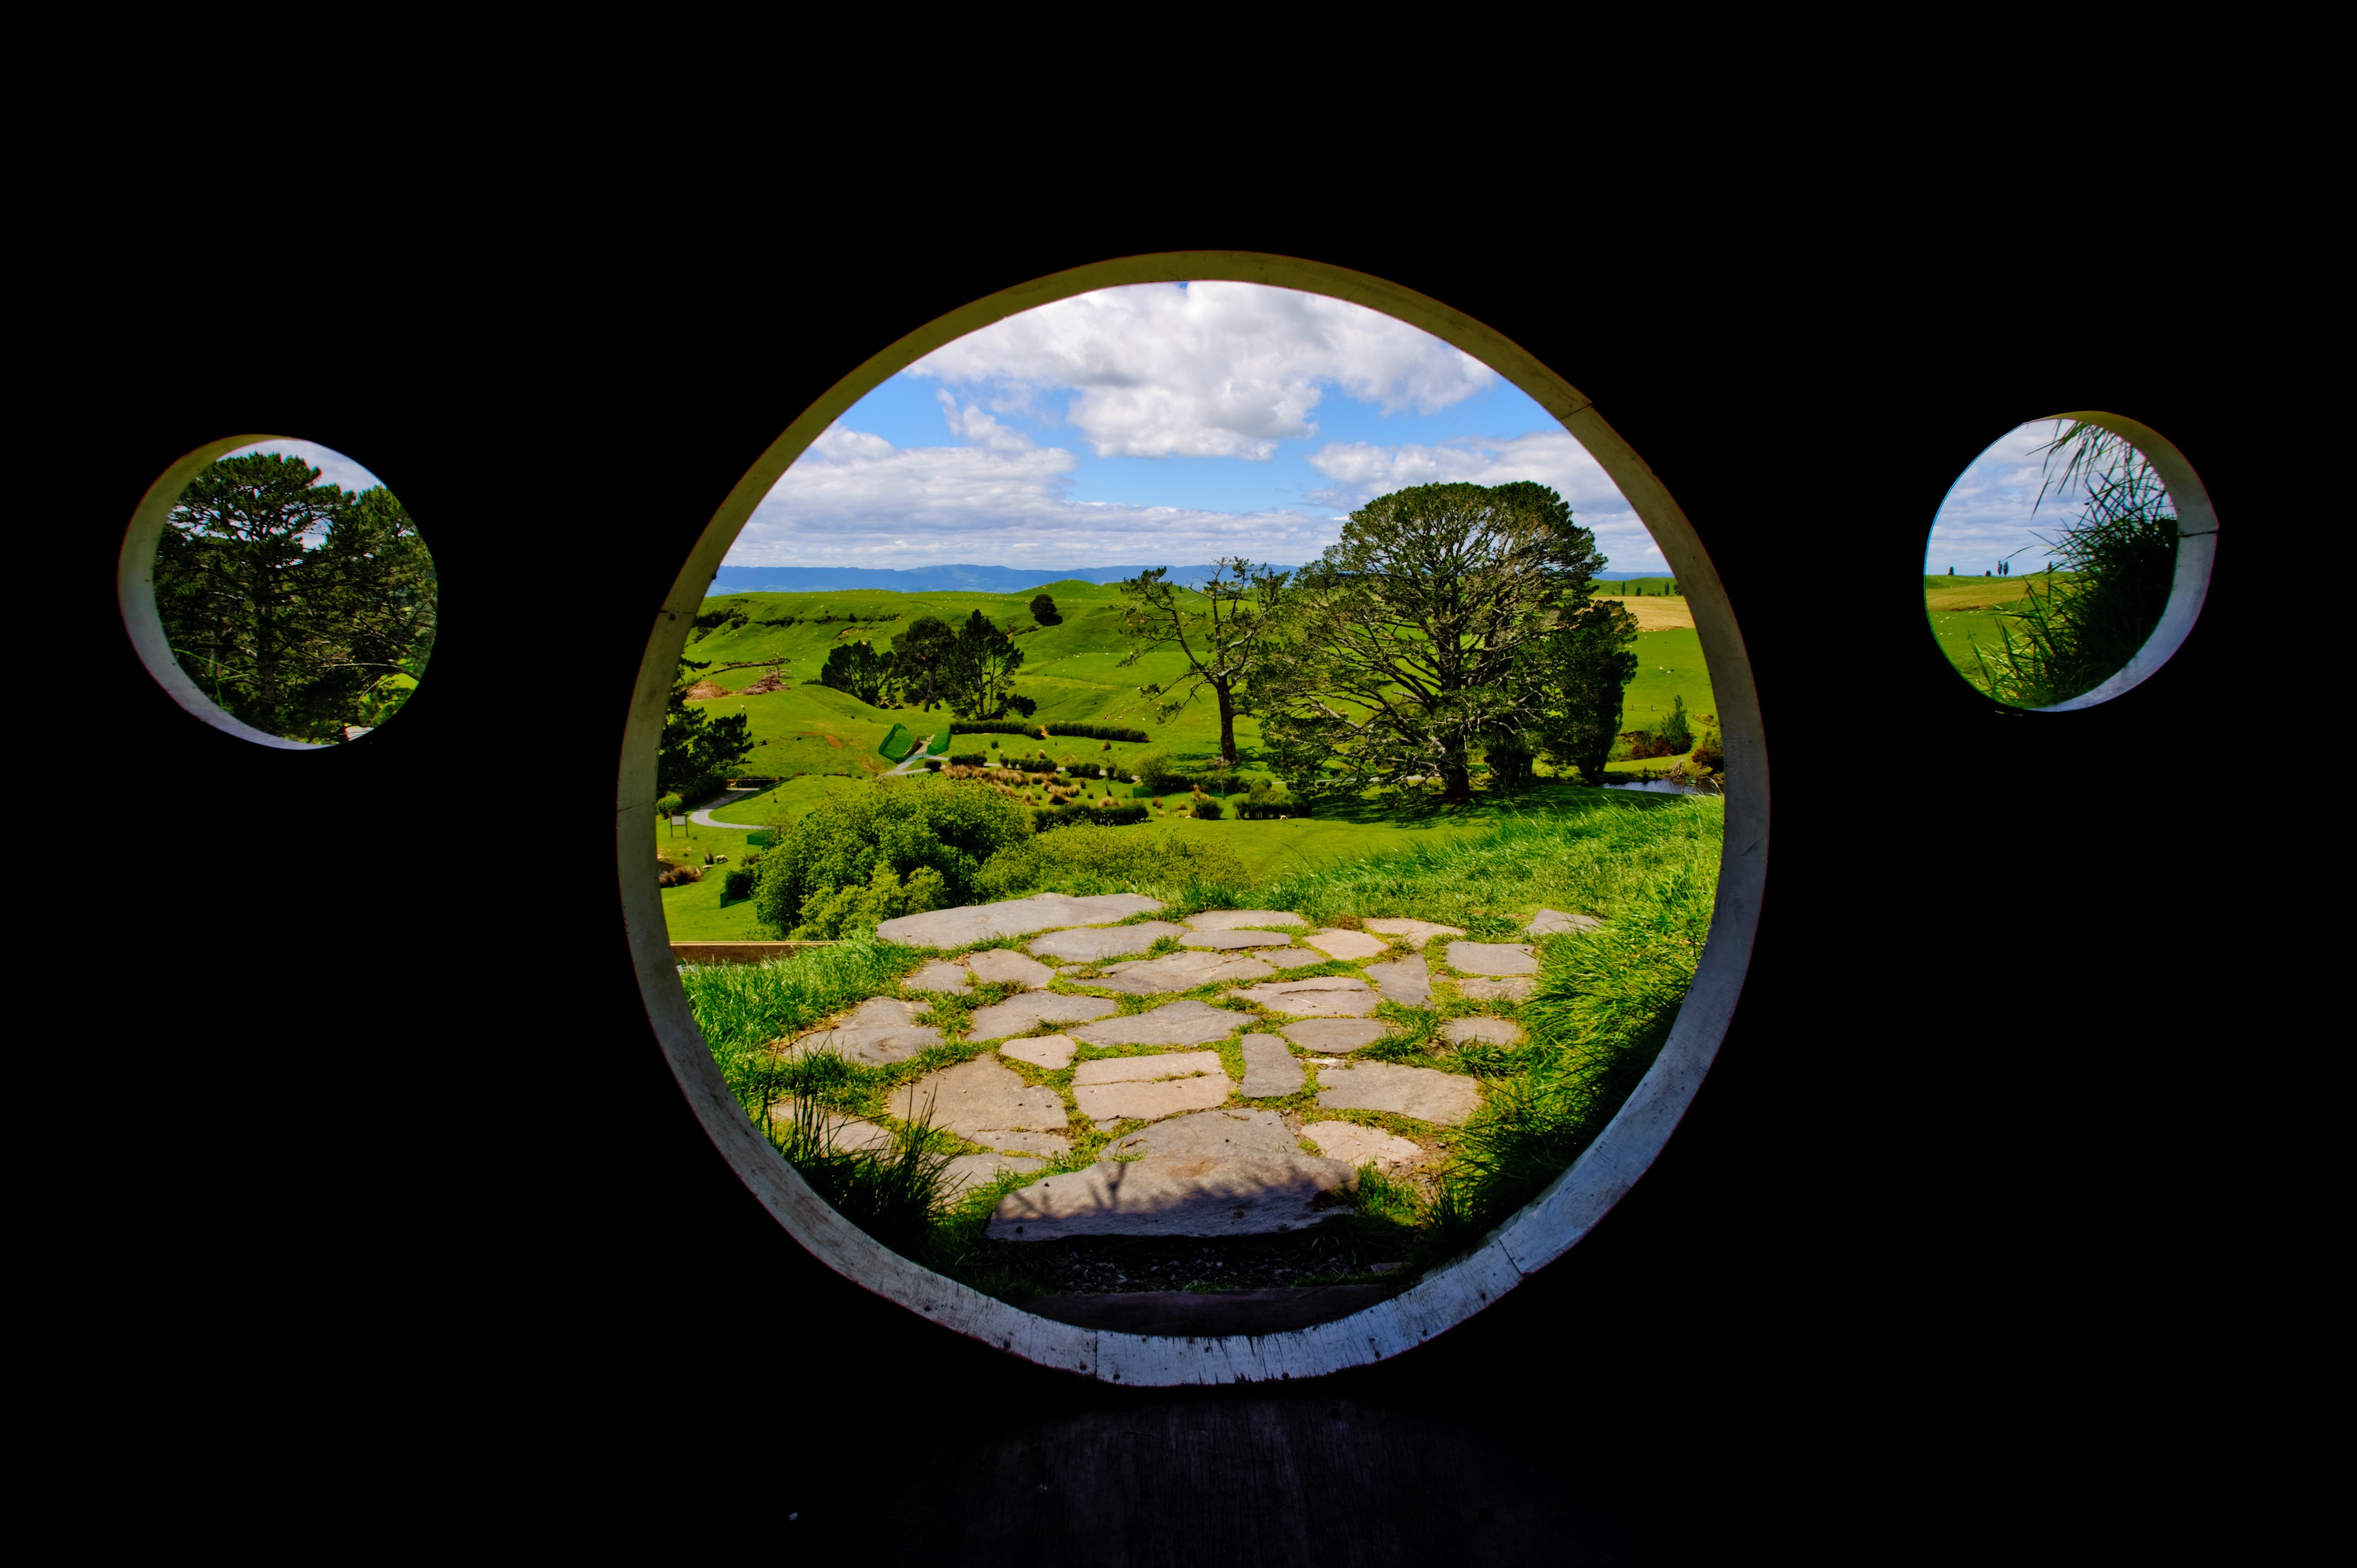 Hobbiton Movie Set - How it all began